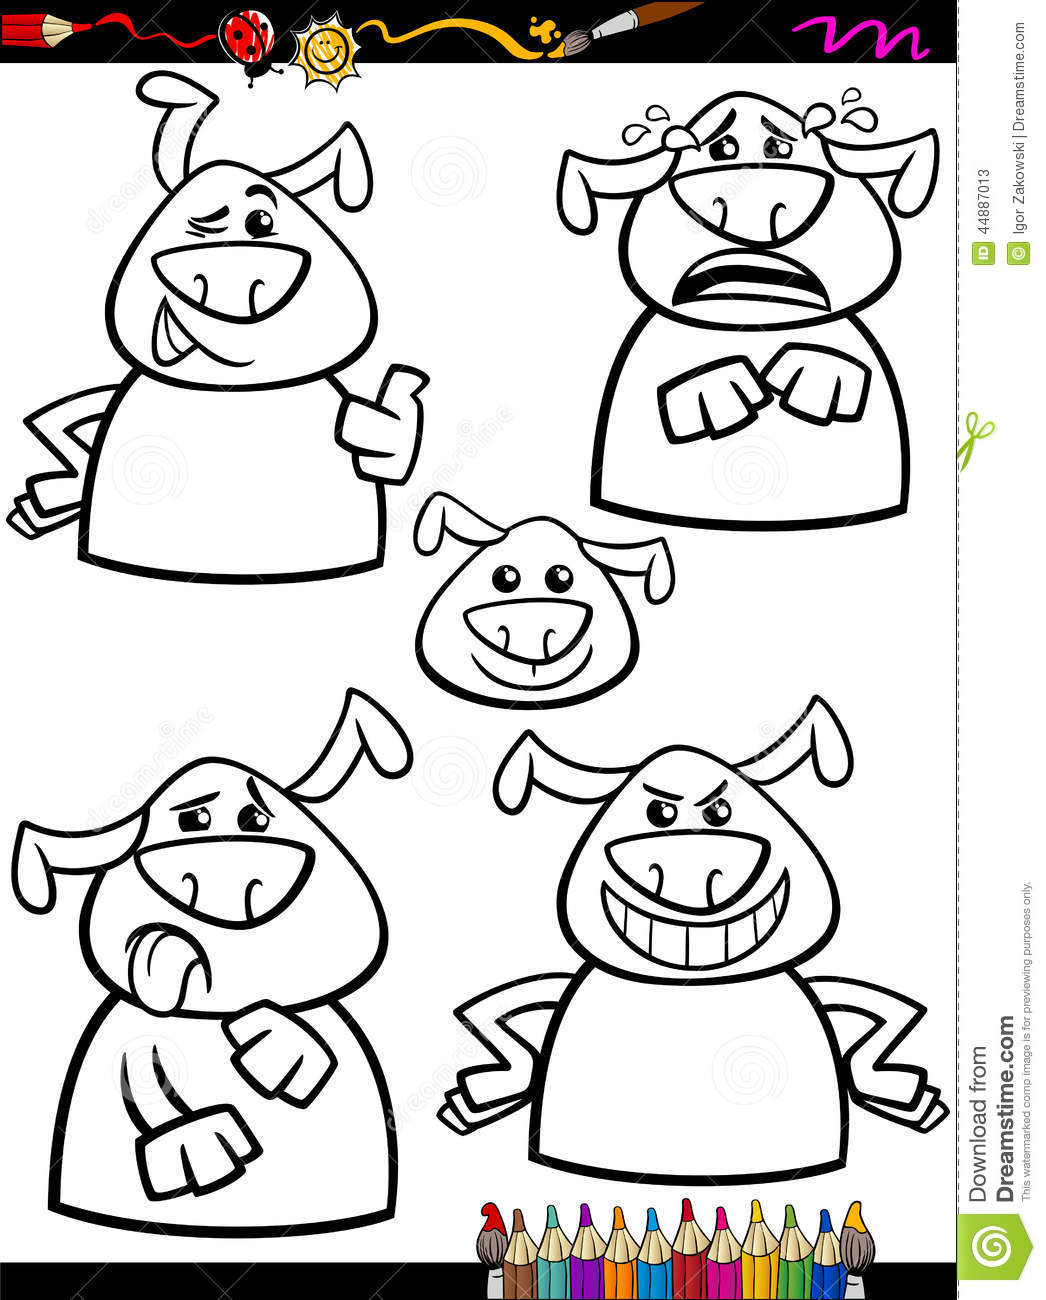 Free coloring pages emotions - Black Book Cartoon Coloring Dog Emotion Funny Illustration Page